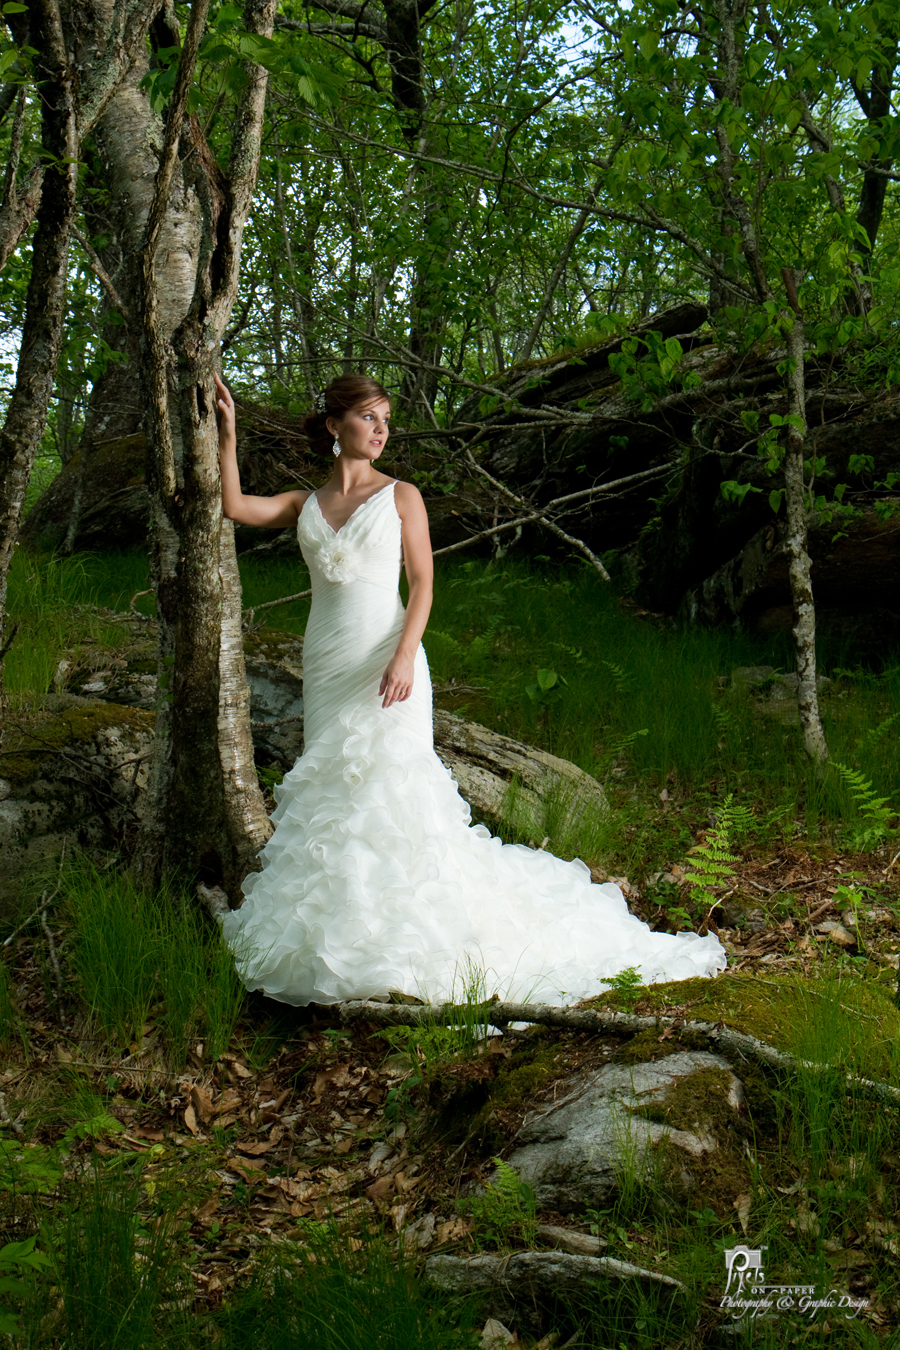 Ericas High Fashion Bridal Photos In The Carolina Mountains